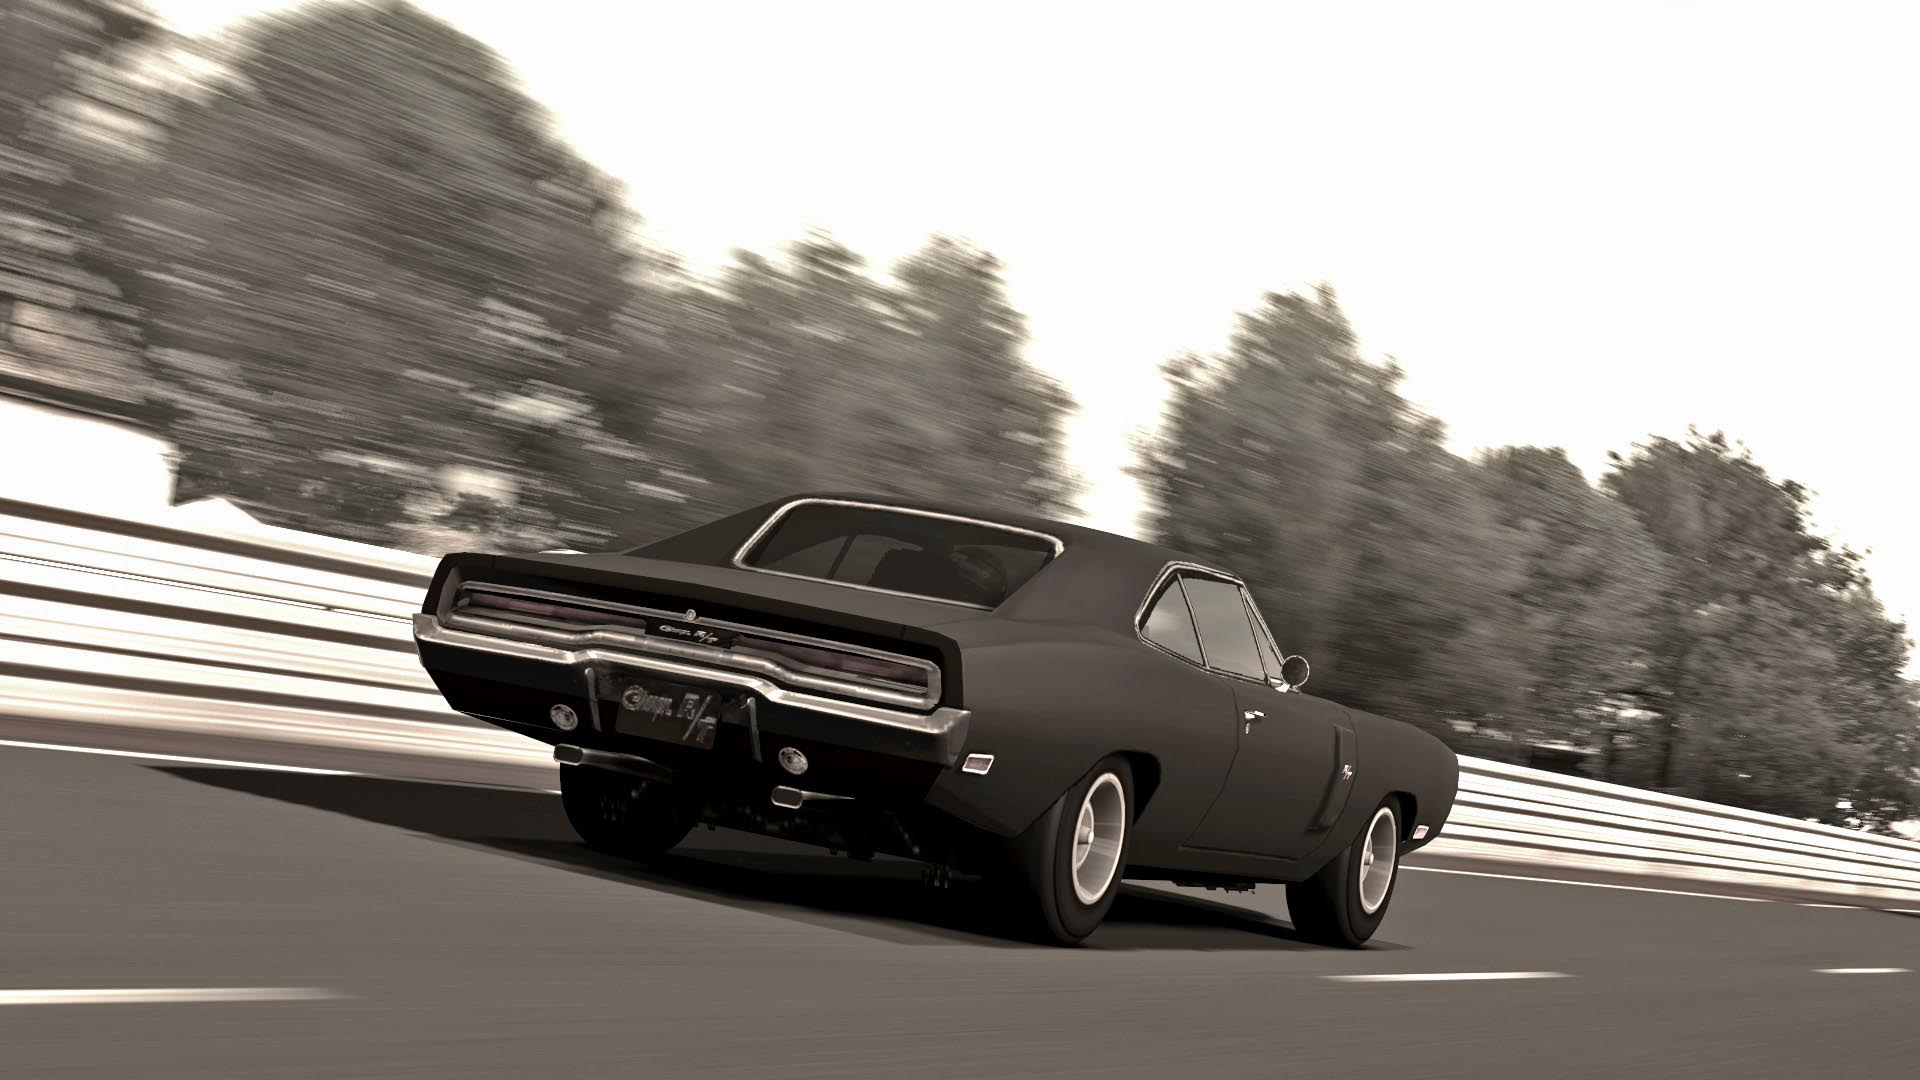 Image For > 1970 Dodge Charger Rt Wallpapers